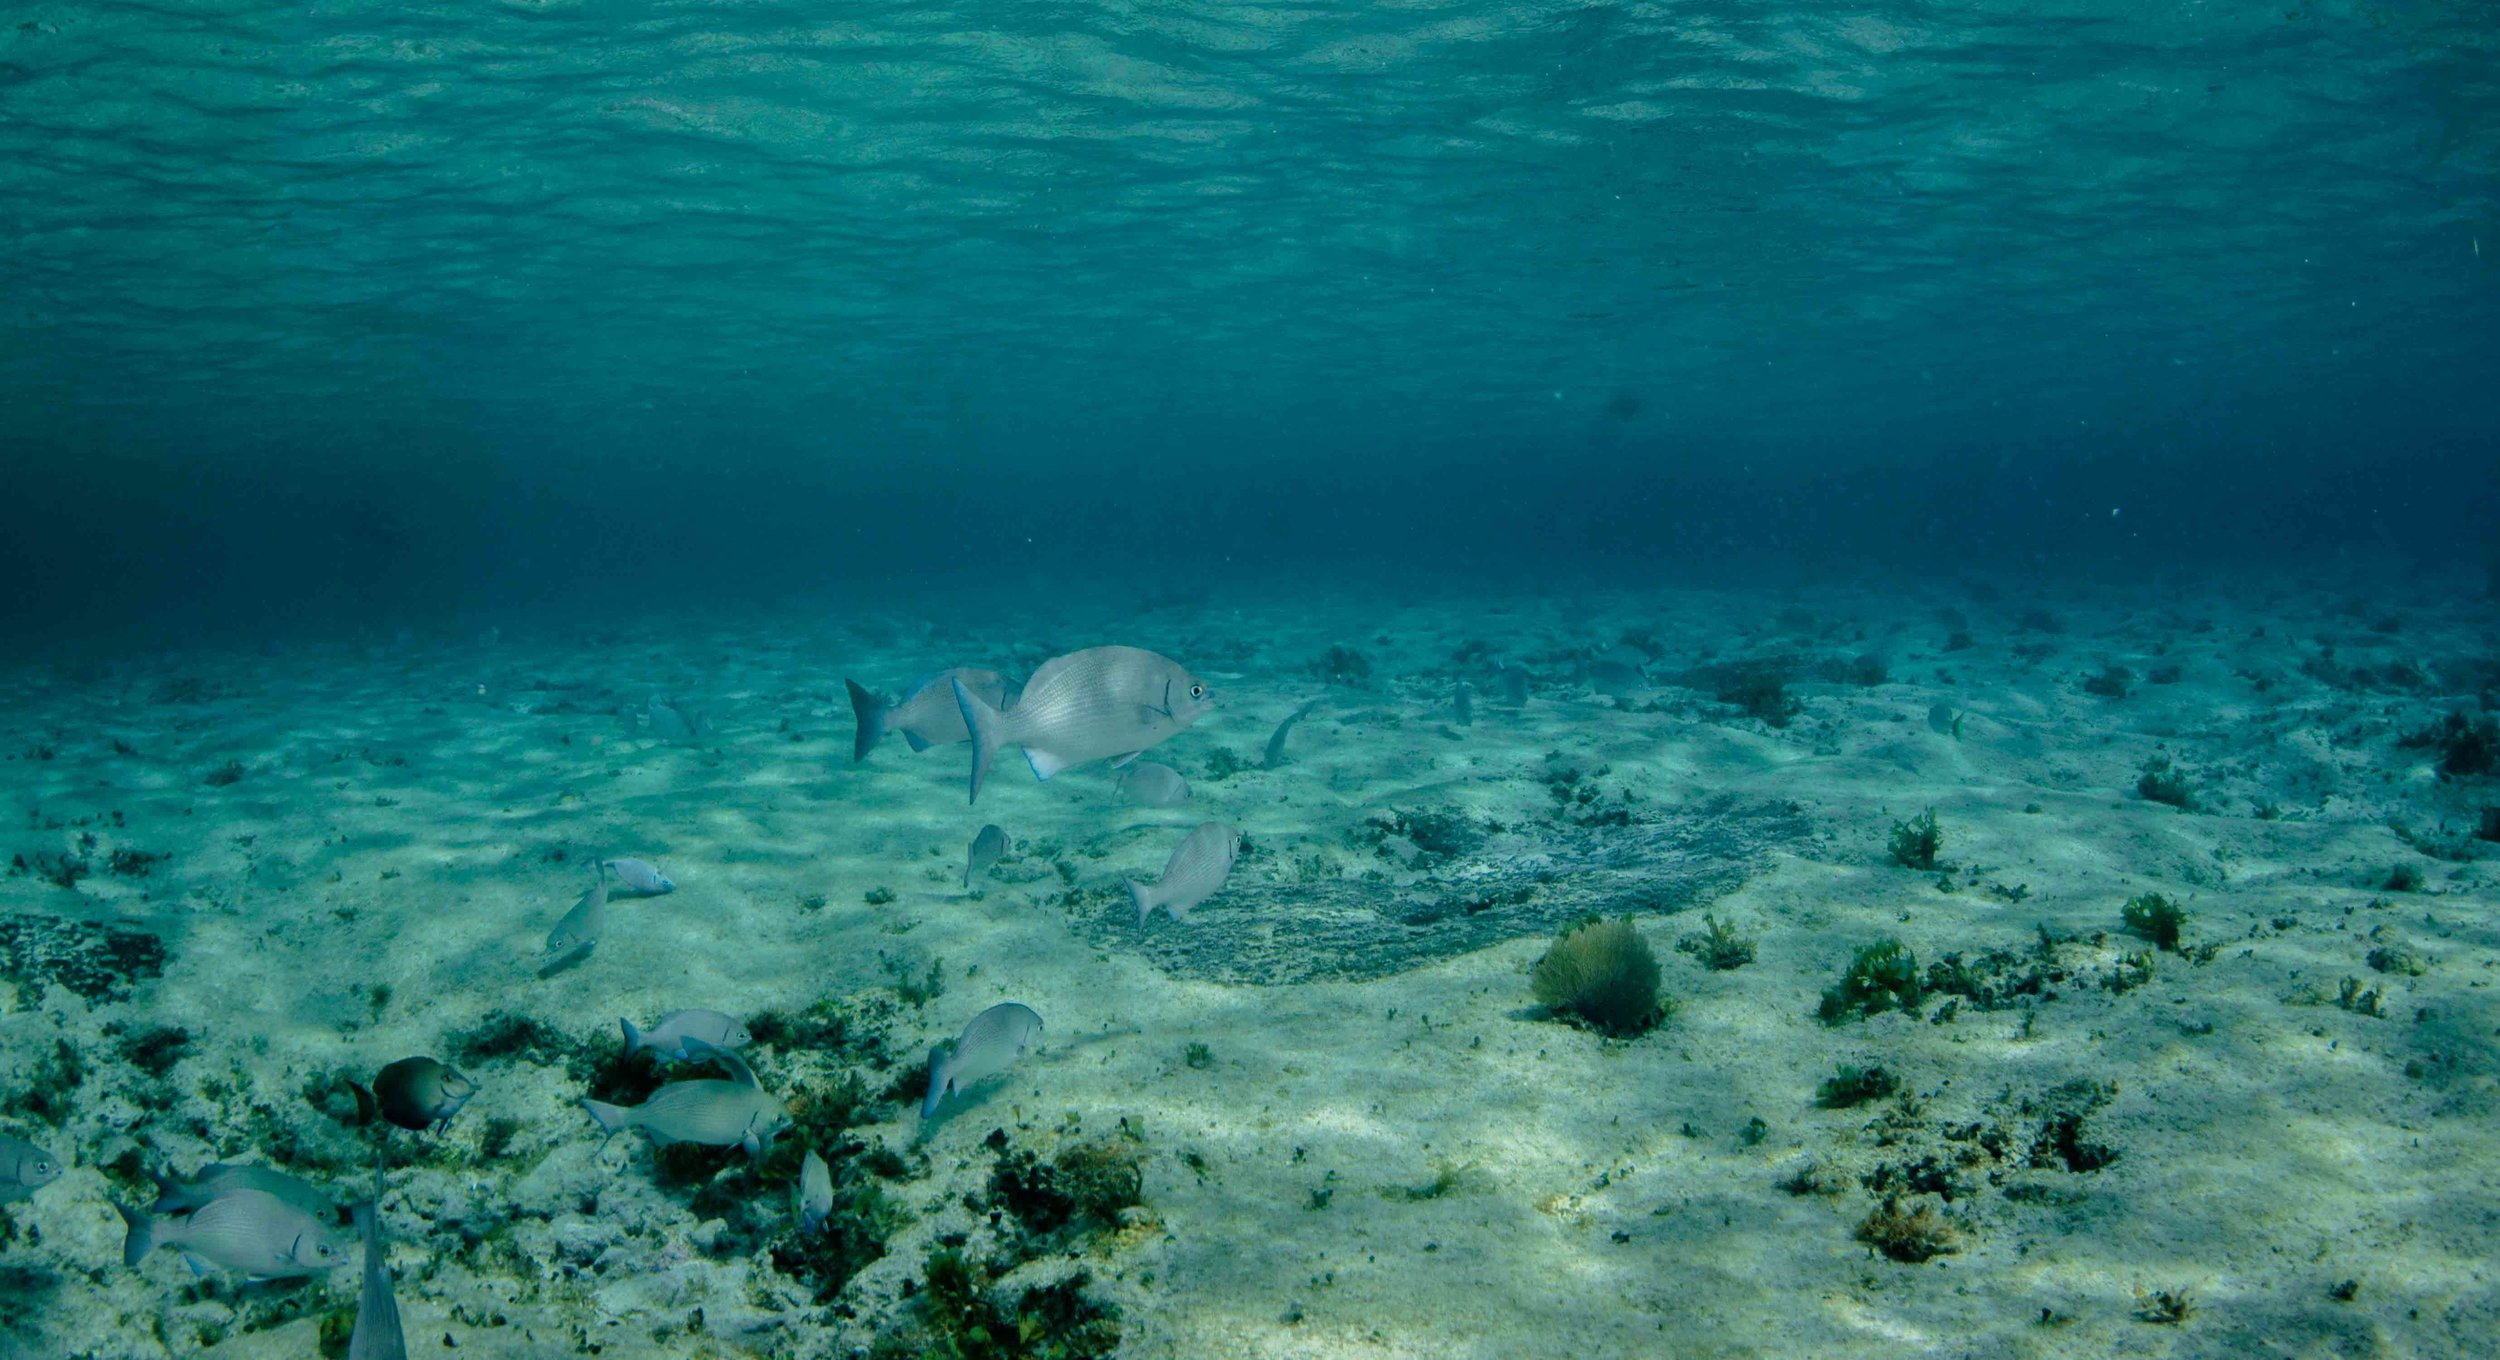 Cozumel Mexico - Scuba Diving - Fish - Underwater Photography